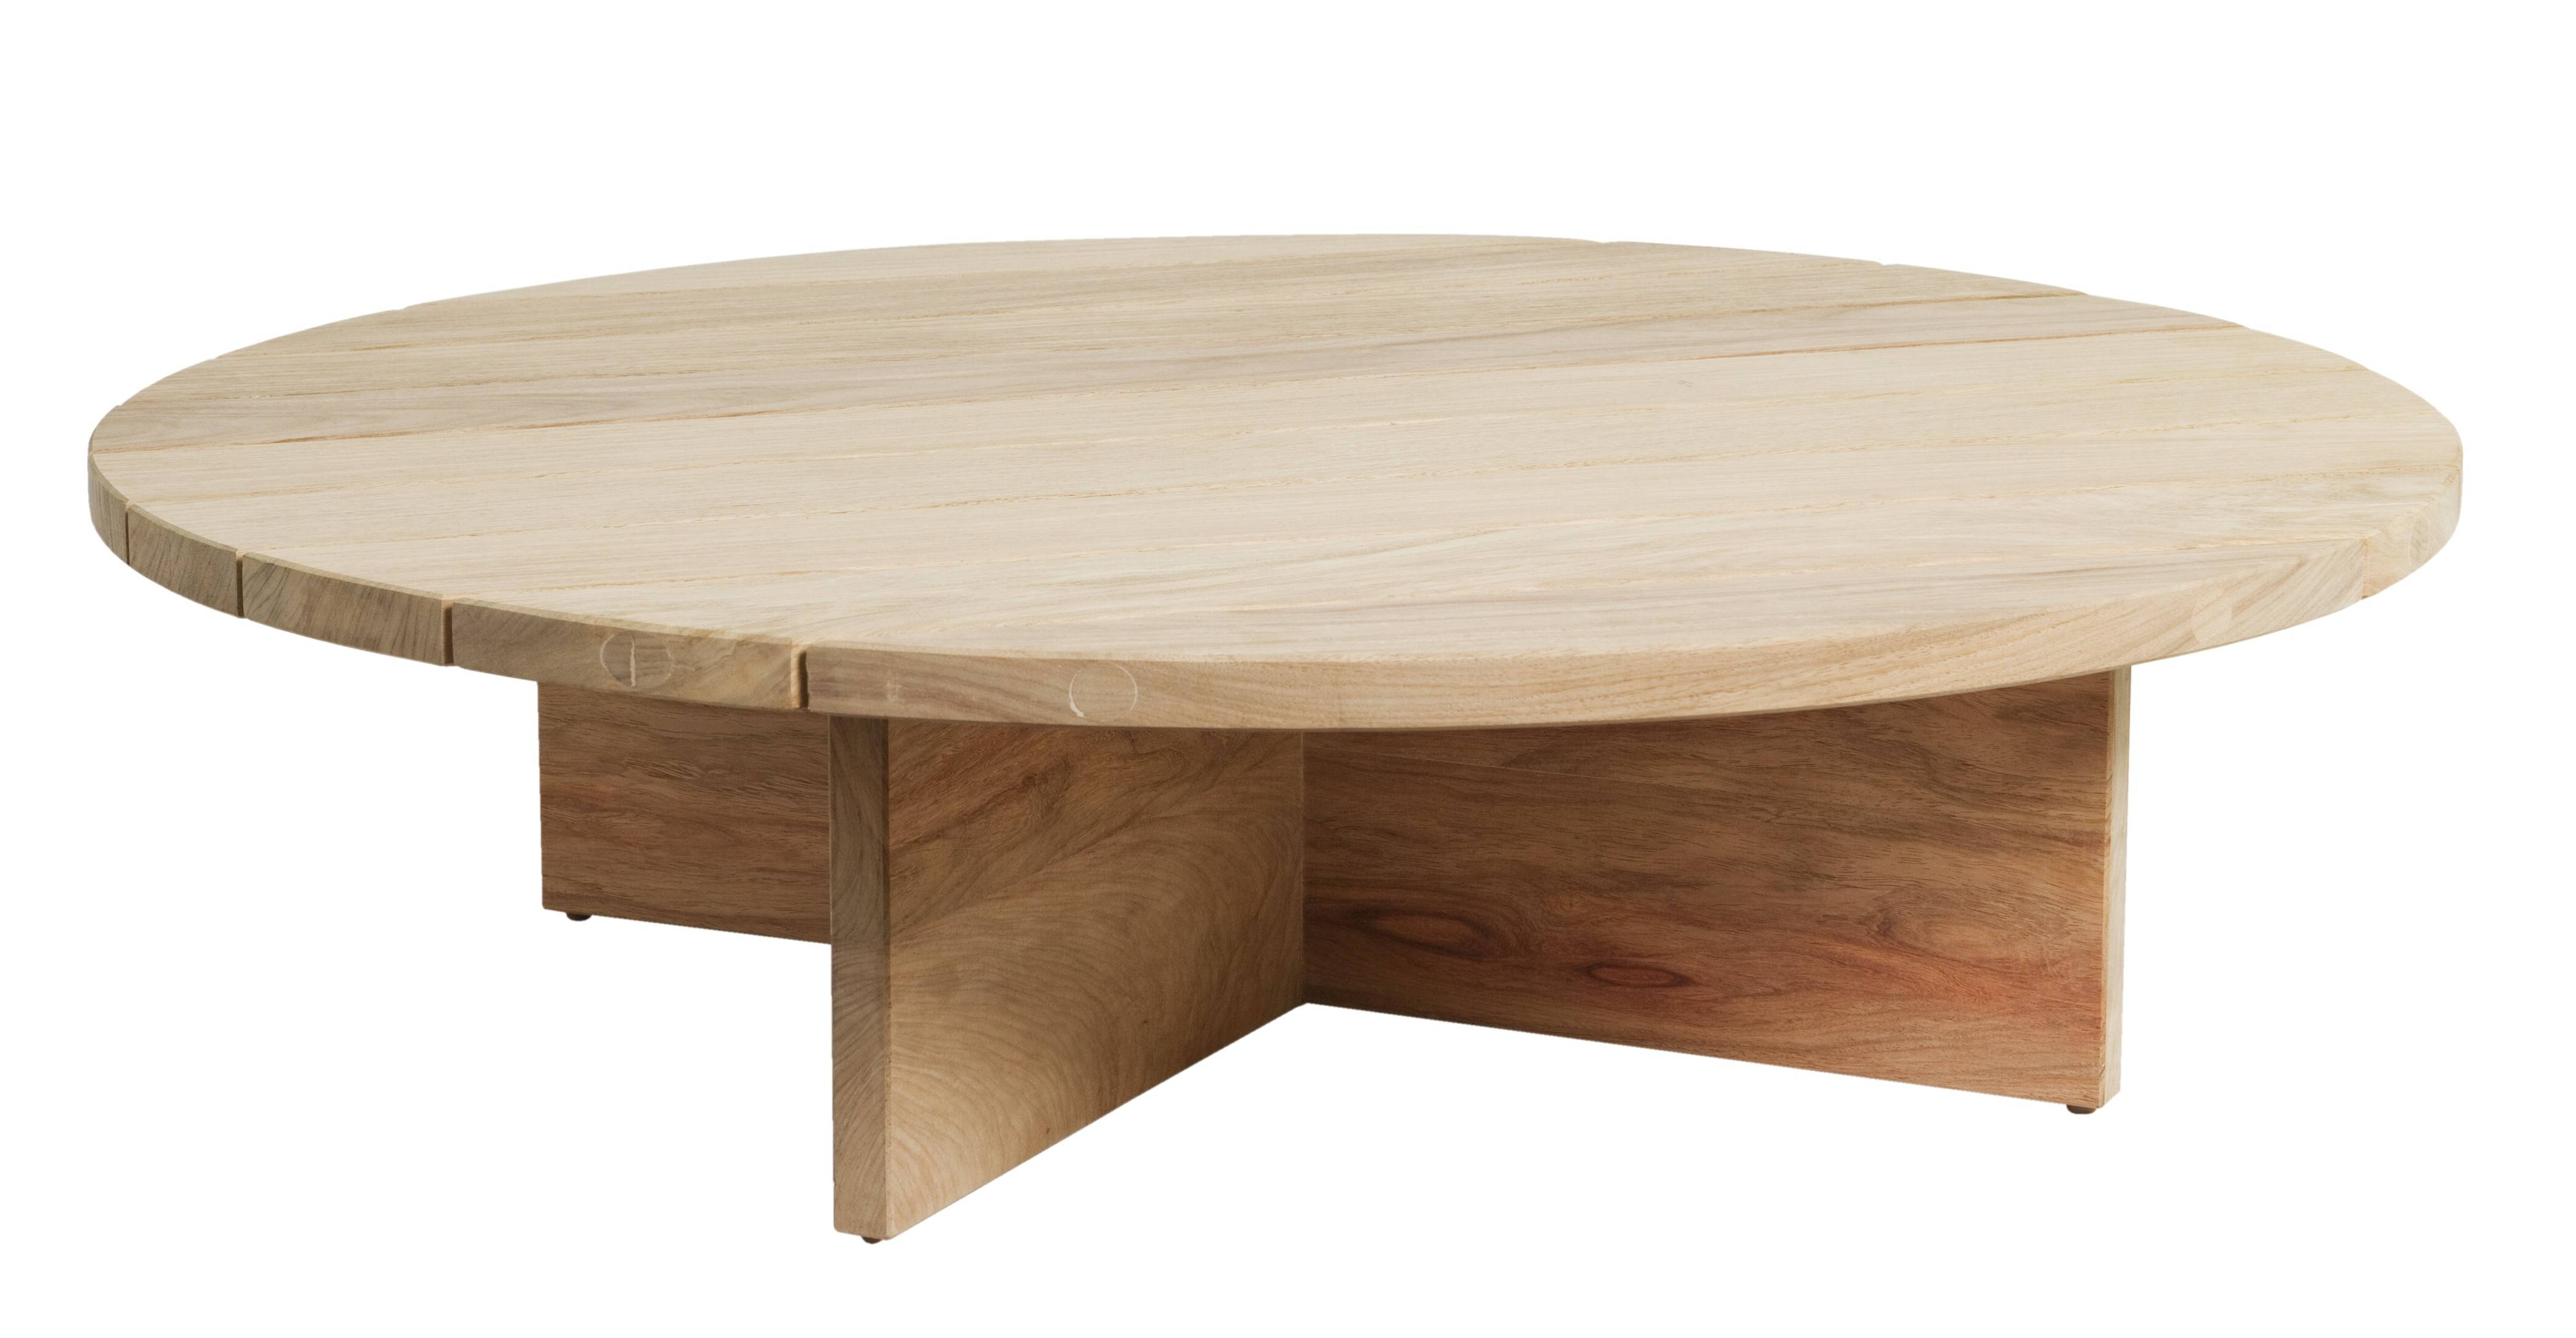 Coffee Table : Chunky Coffee Table Round Round Timber Coffee Table pertaining to Chunky Coffee Tables (Image 9 of 30)